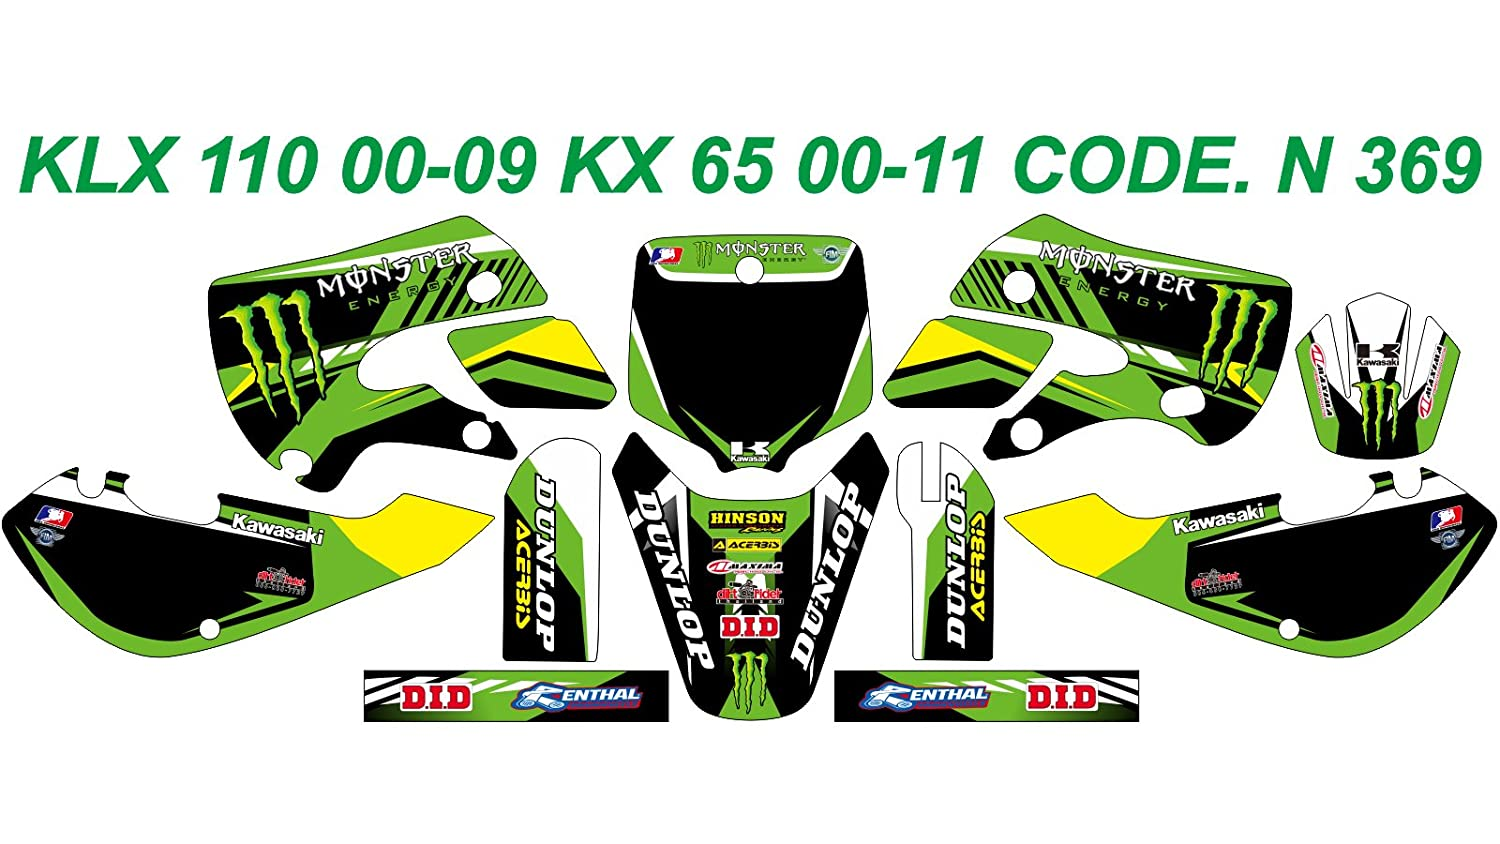 N 369 KAWASAKI KLX 110 00-09 KX 65 00-13 DECALS STICKERS GRAPHICS KIT